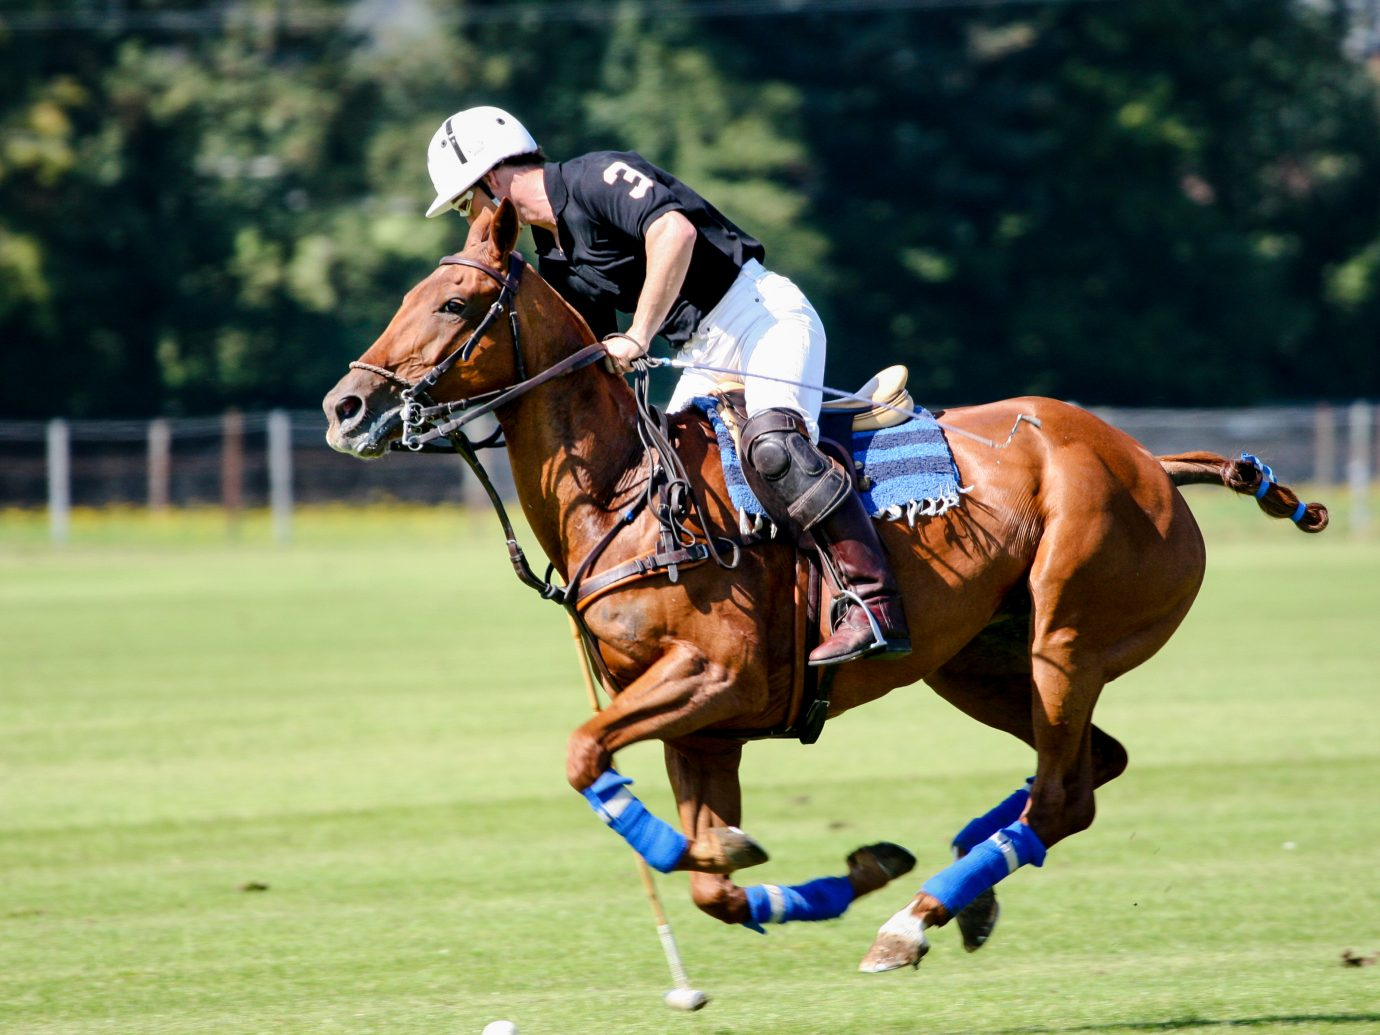 Equestrians playing polo